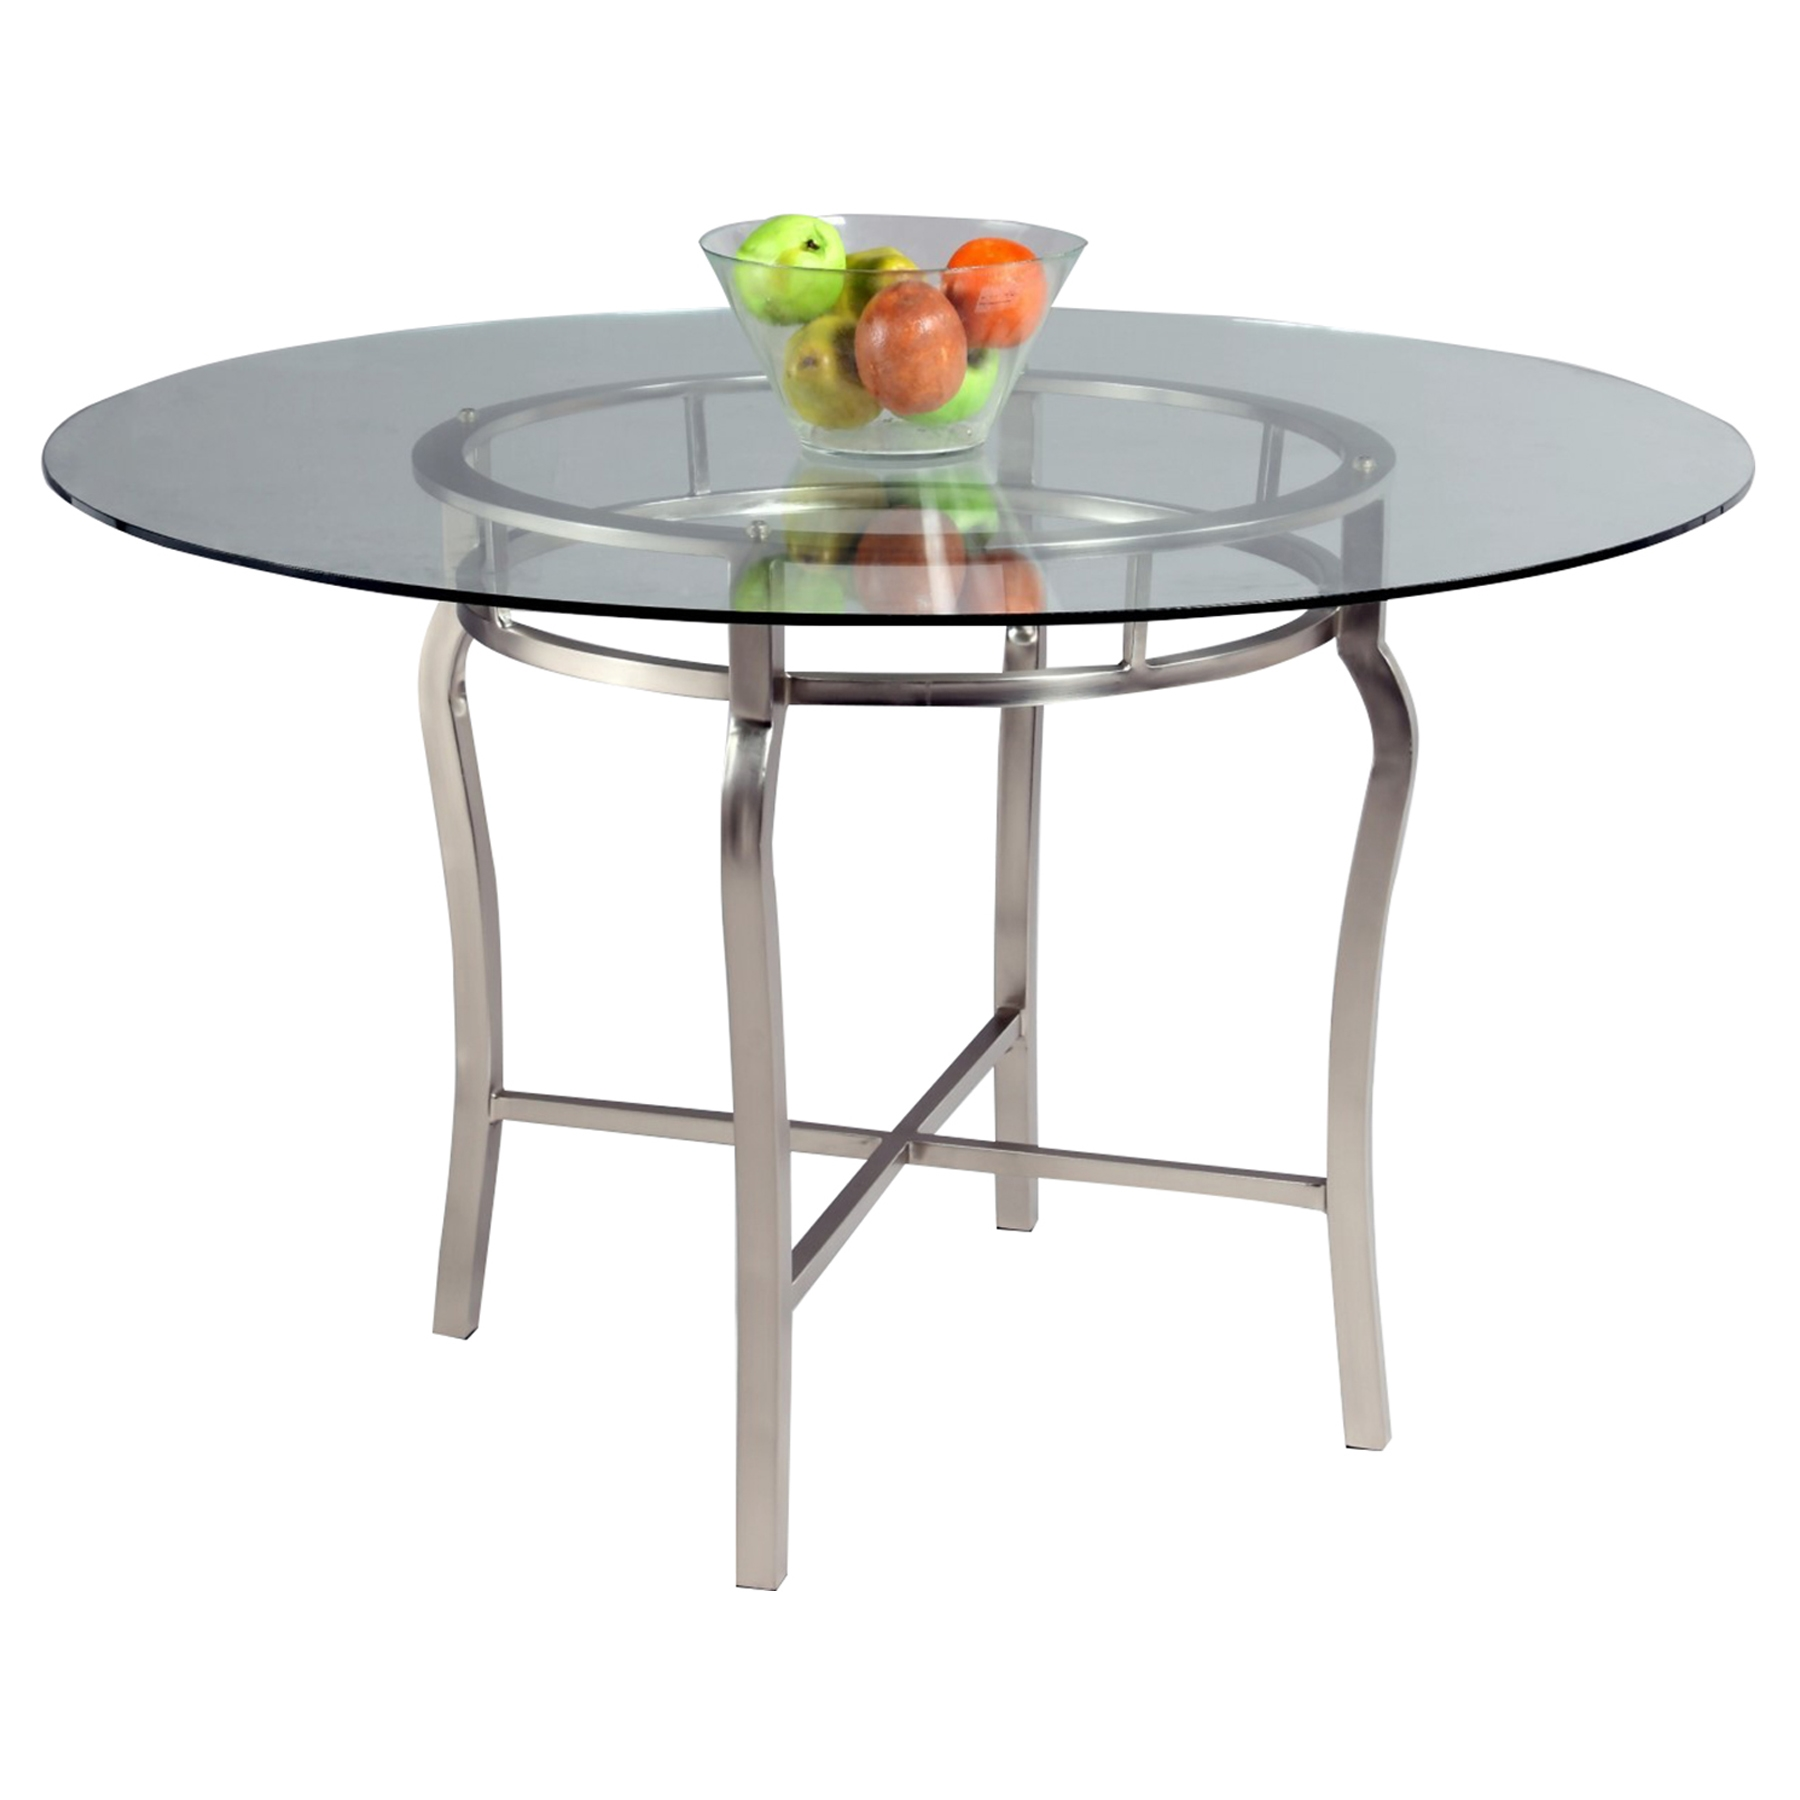 Angelina Round Top Dining Table - CI-ANGELINA-DT